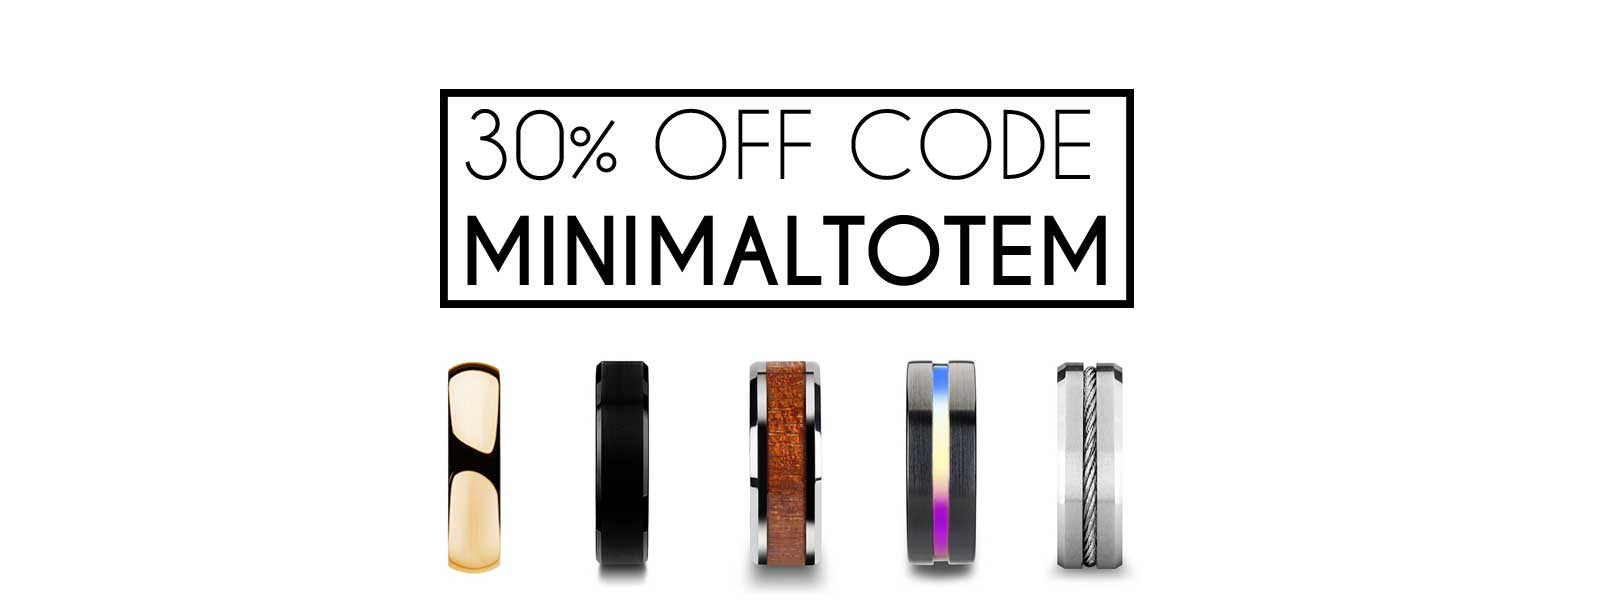 Minimal Totem | 30% Off Promotion Tungsten Bands Banner